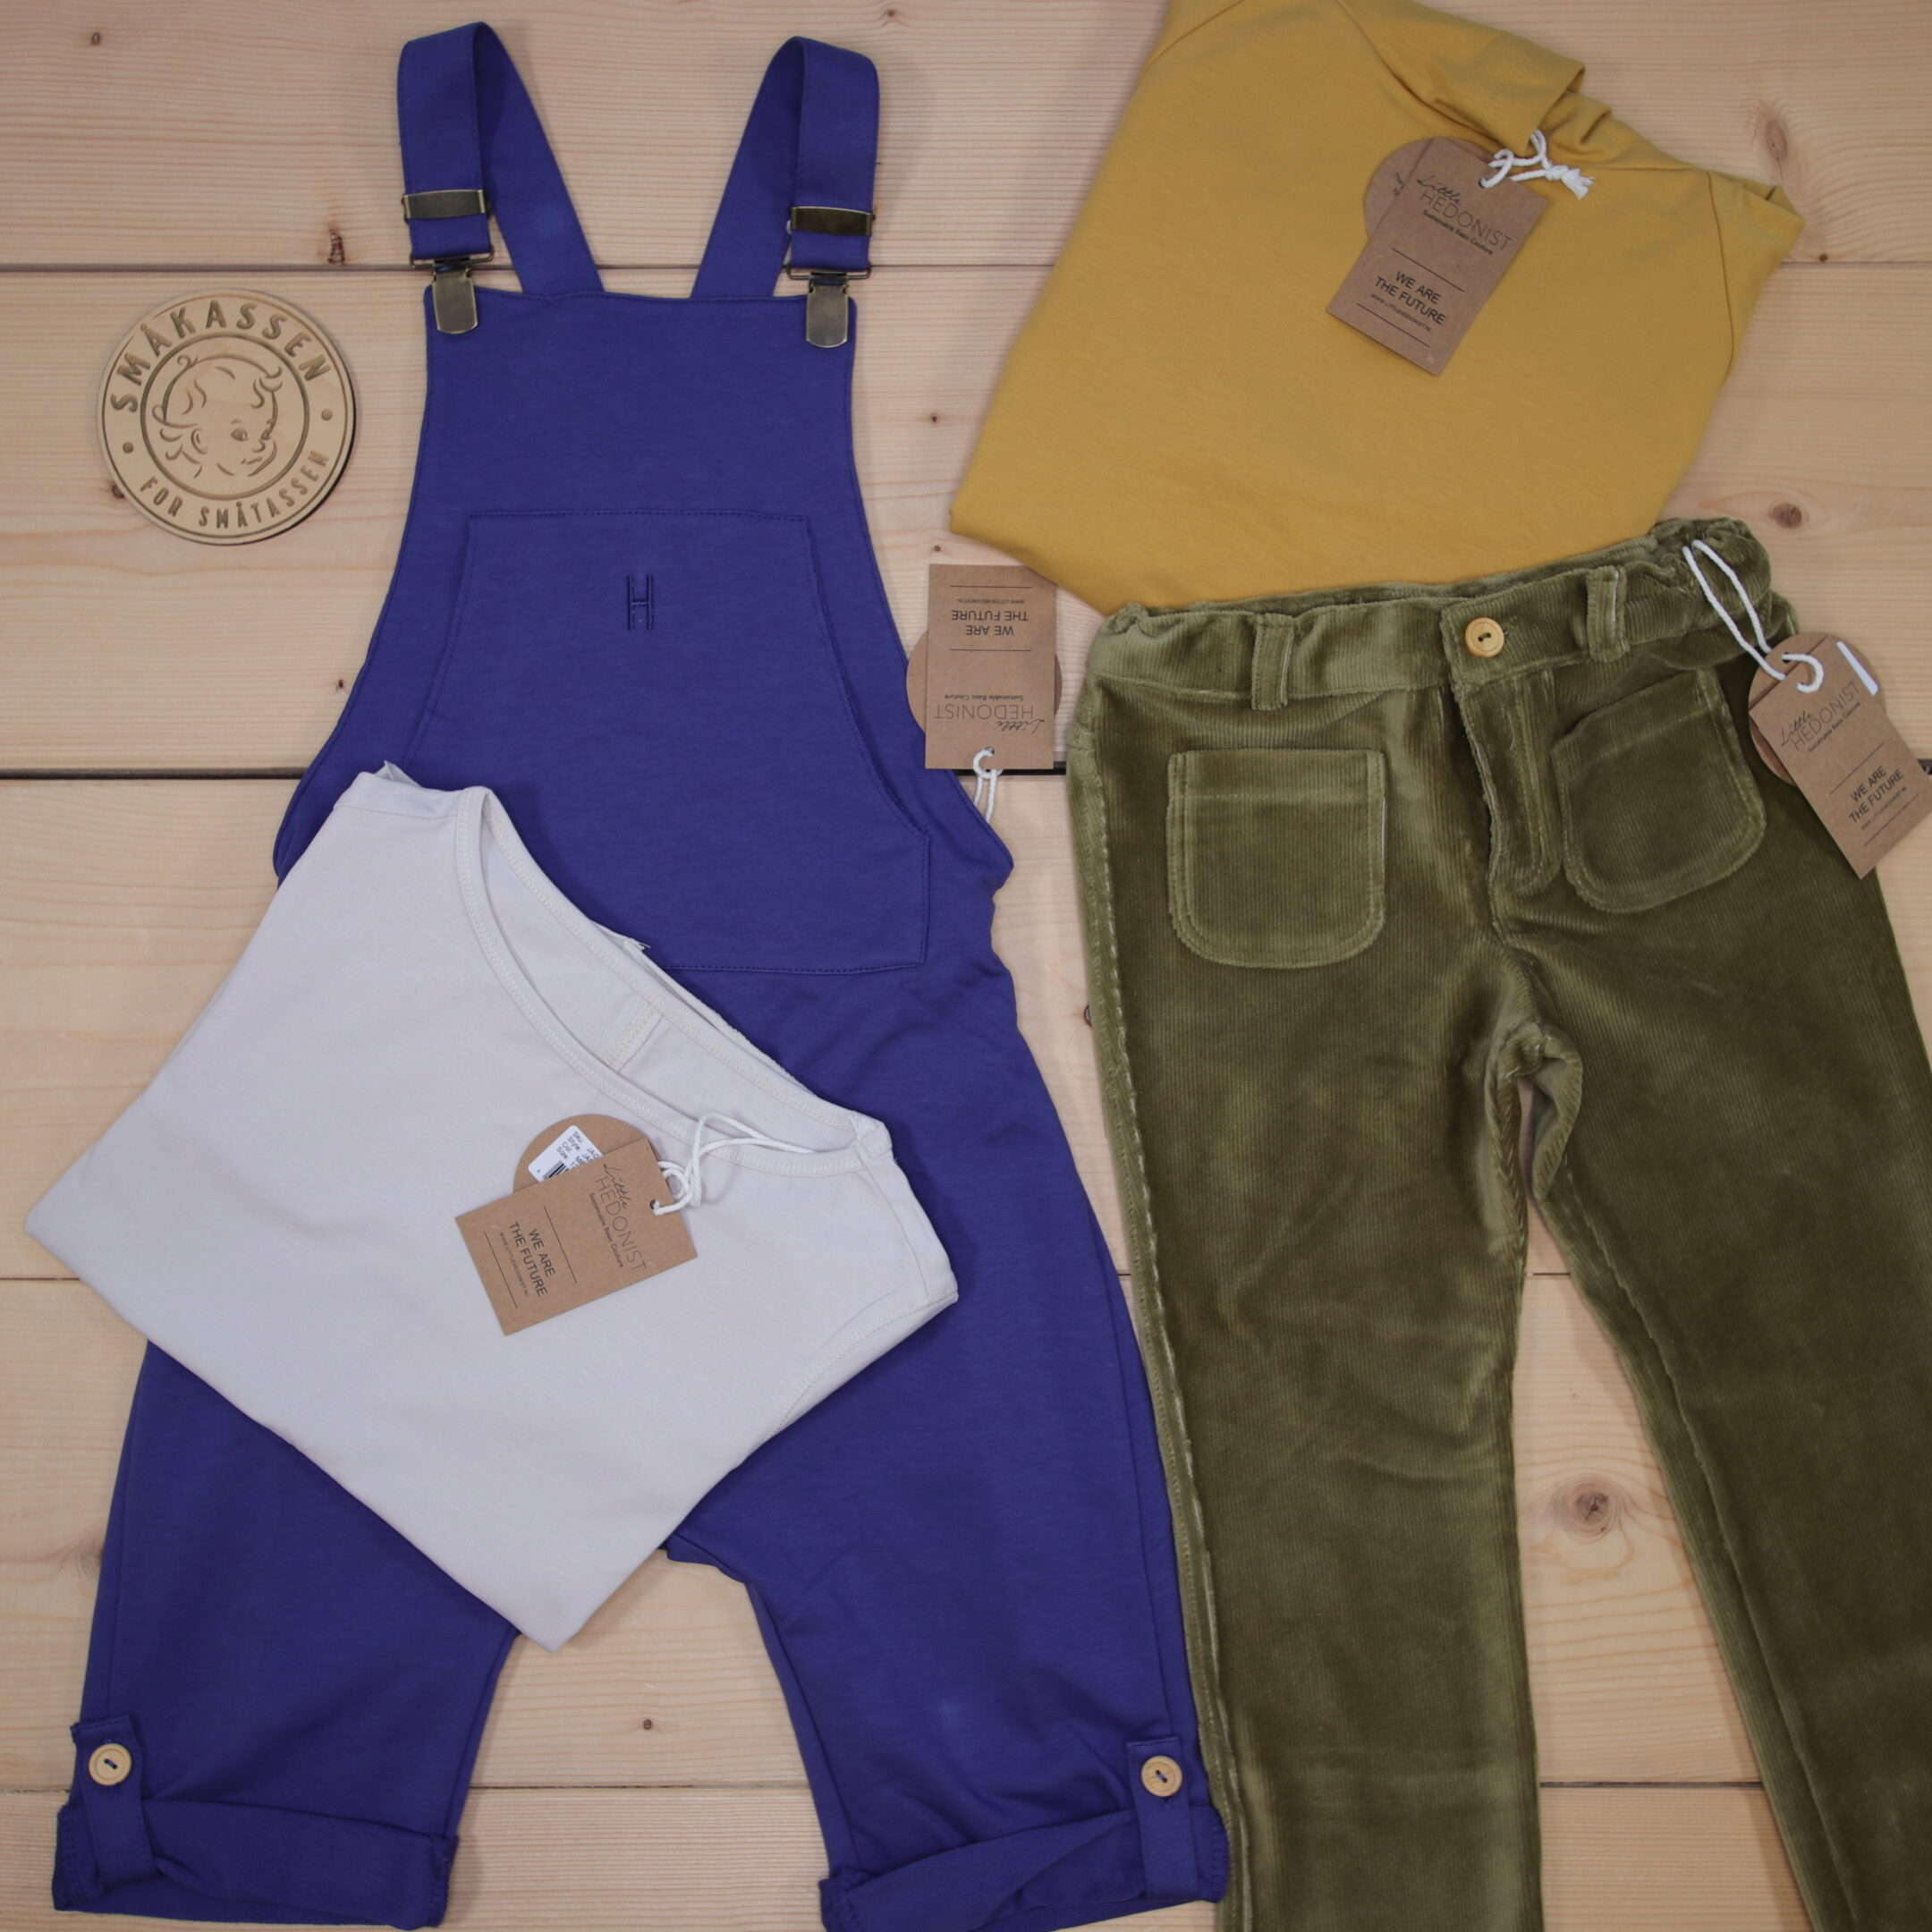 This is a 166 GBP* Småkassen that we prepared for a boy  in the style cool in size 122